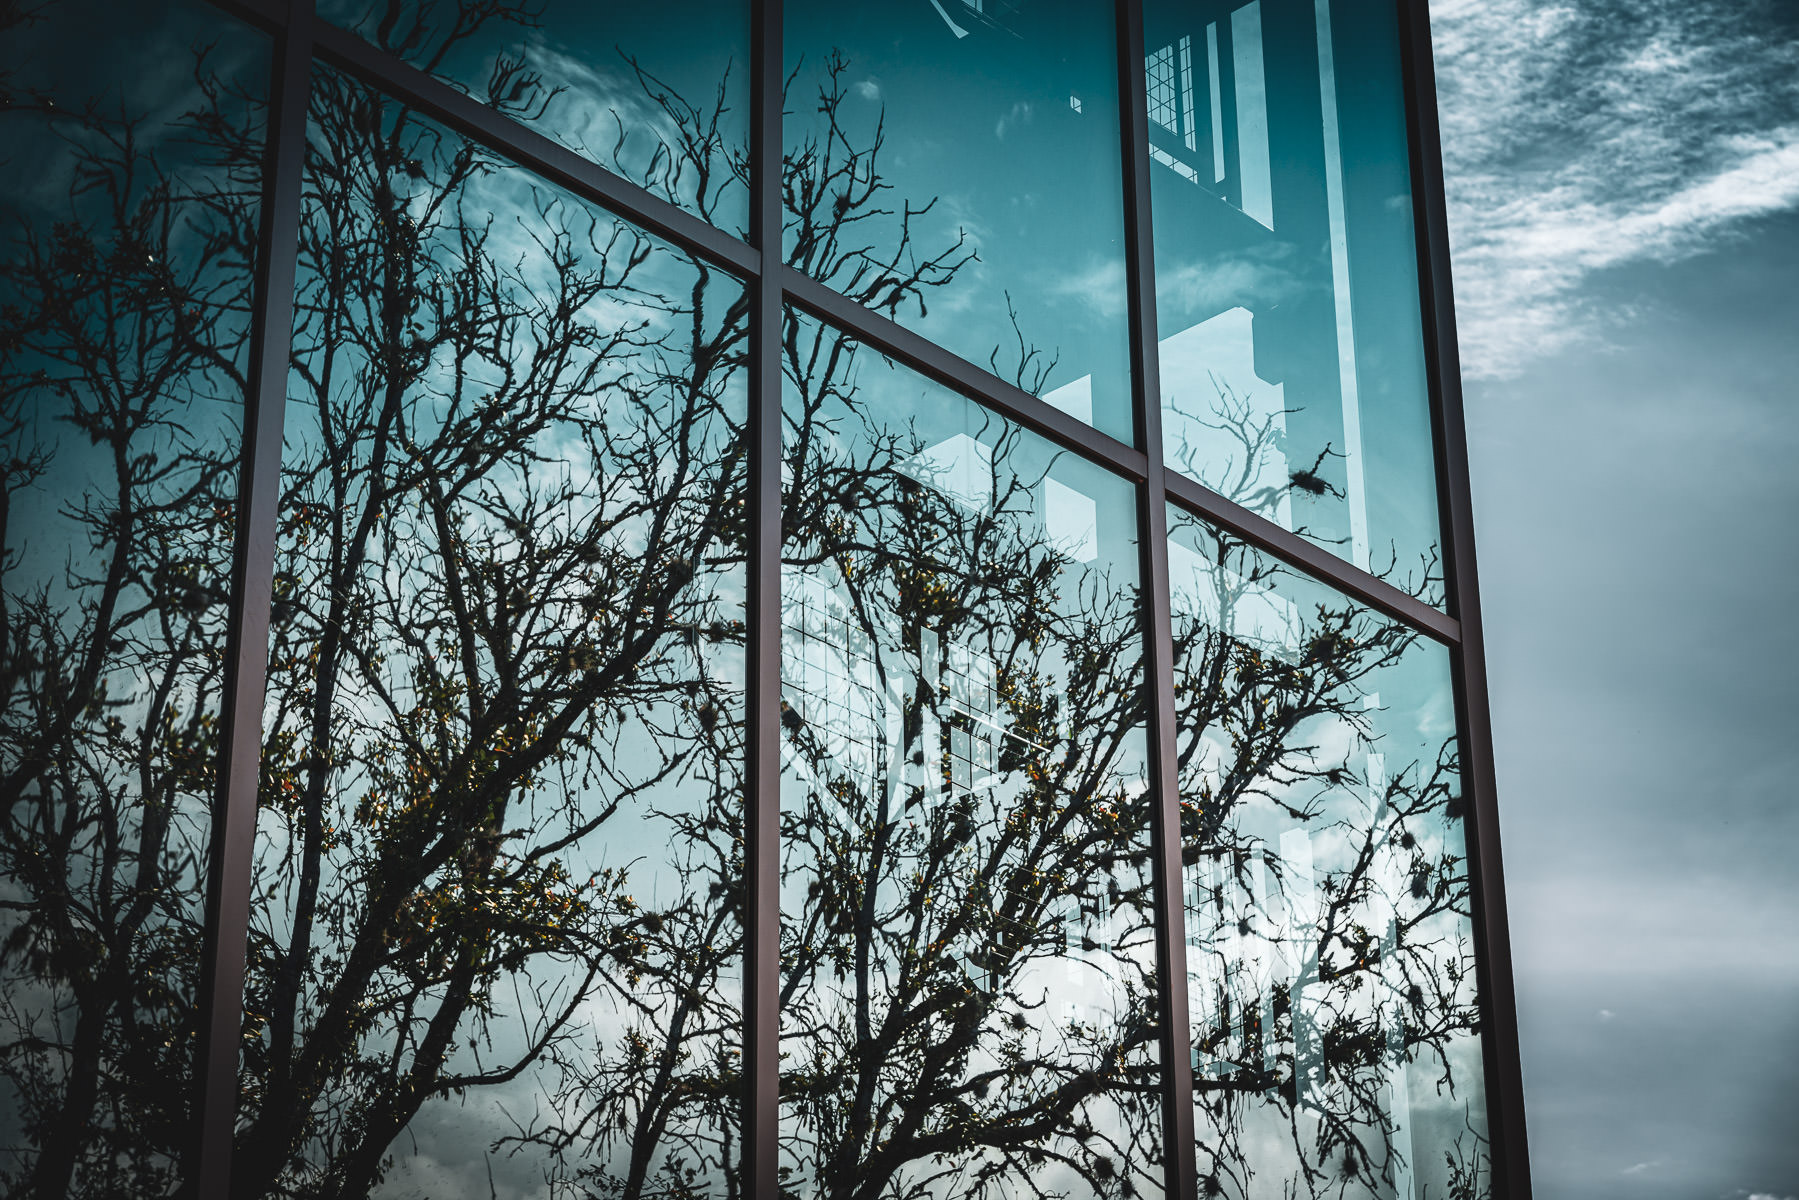 Trees reflect in windows at Kiest Hall, Texas A&M University.